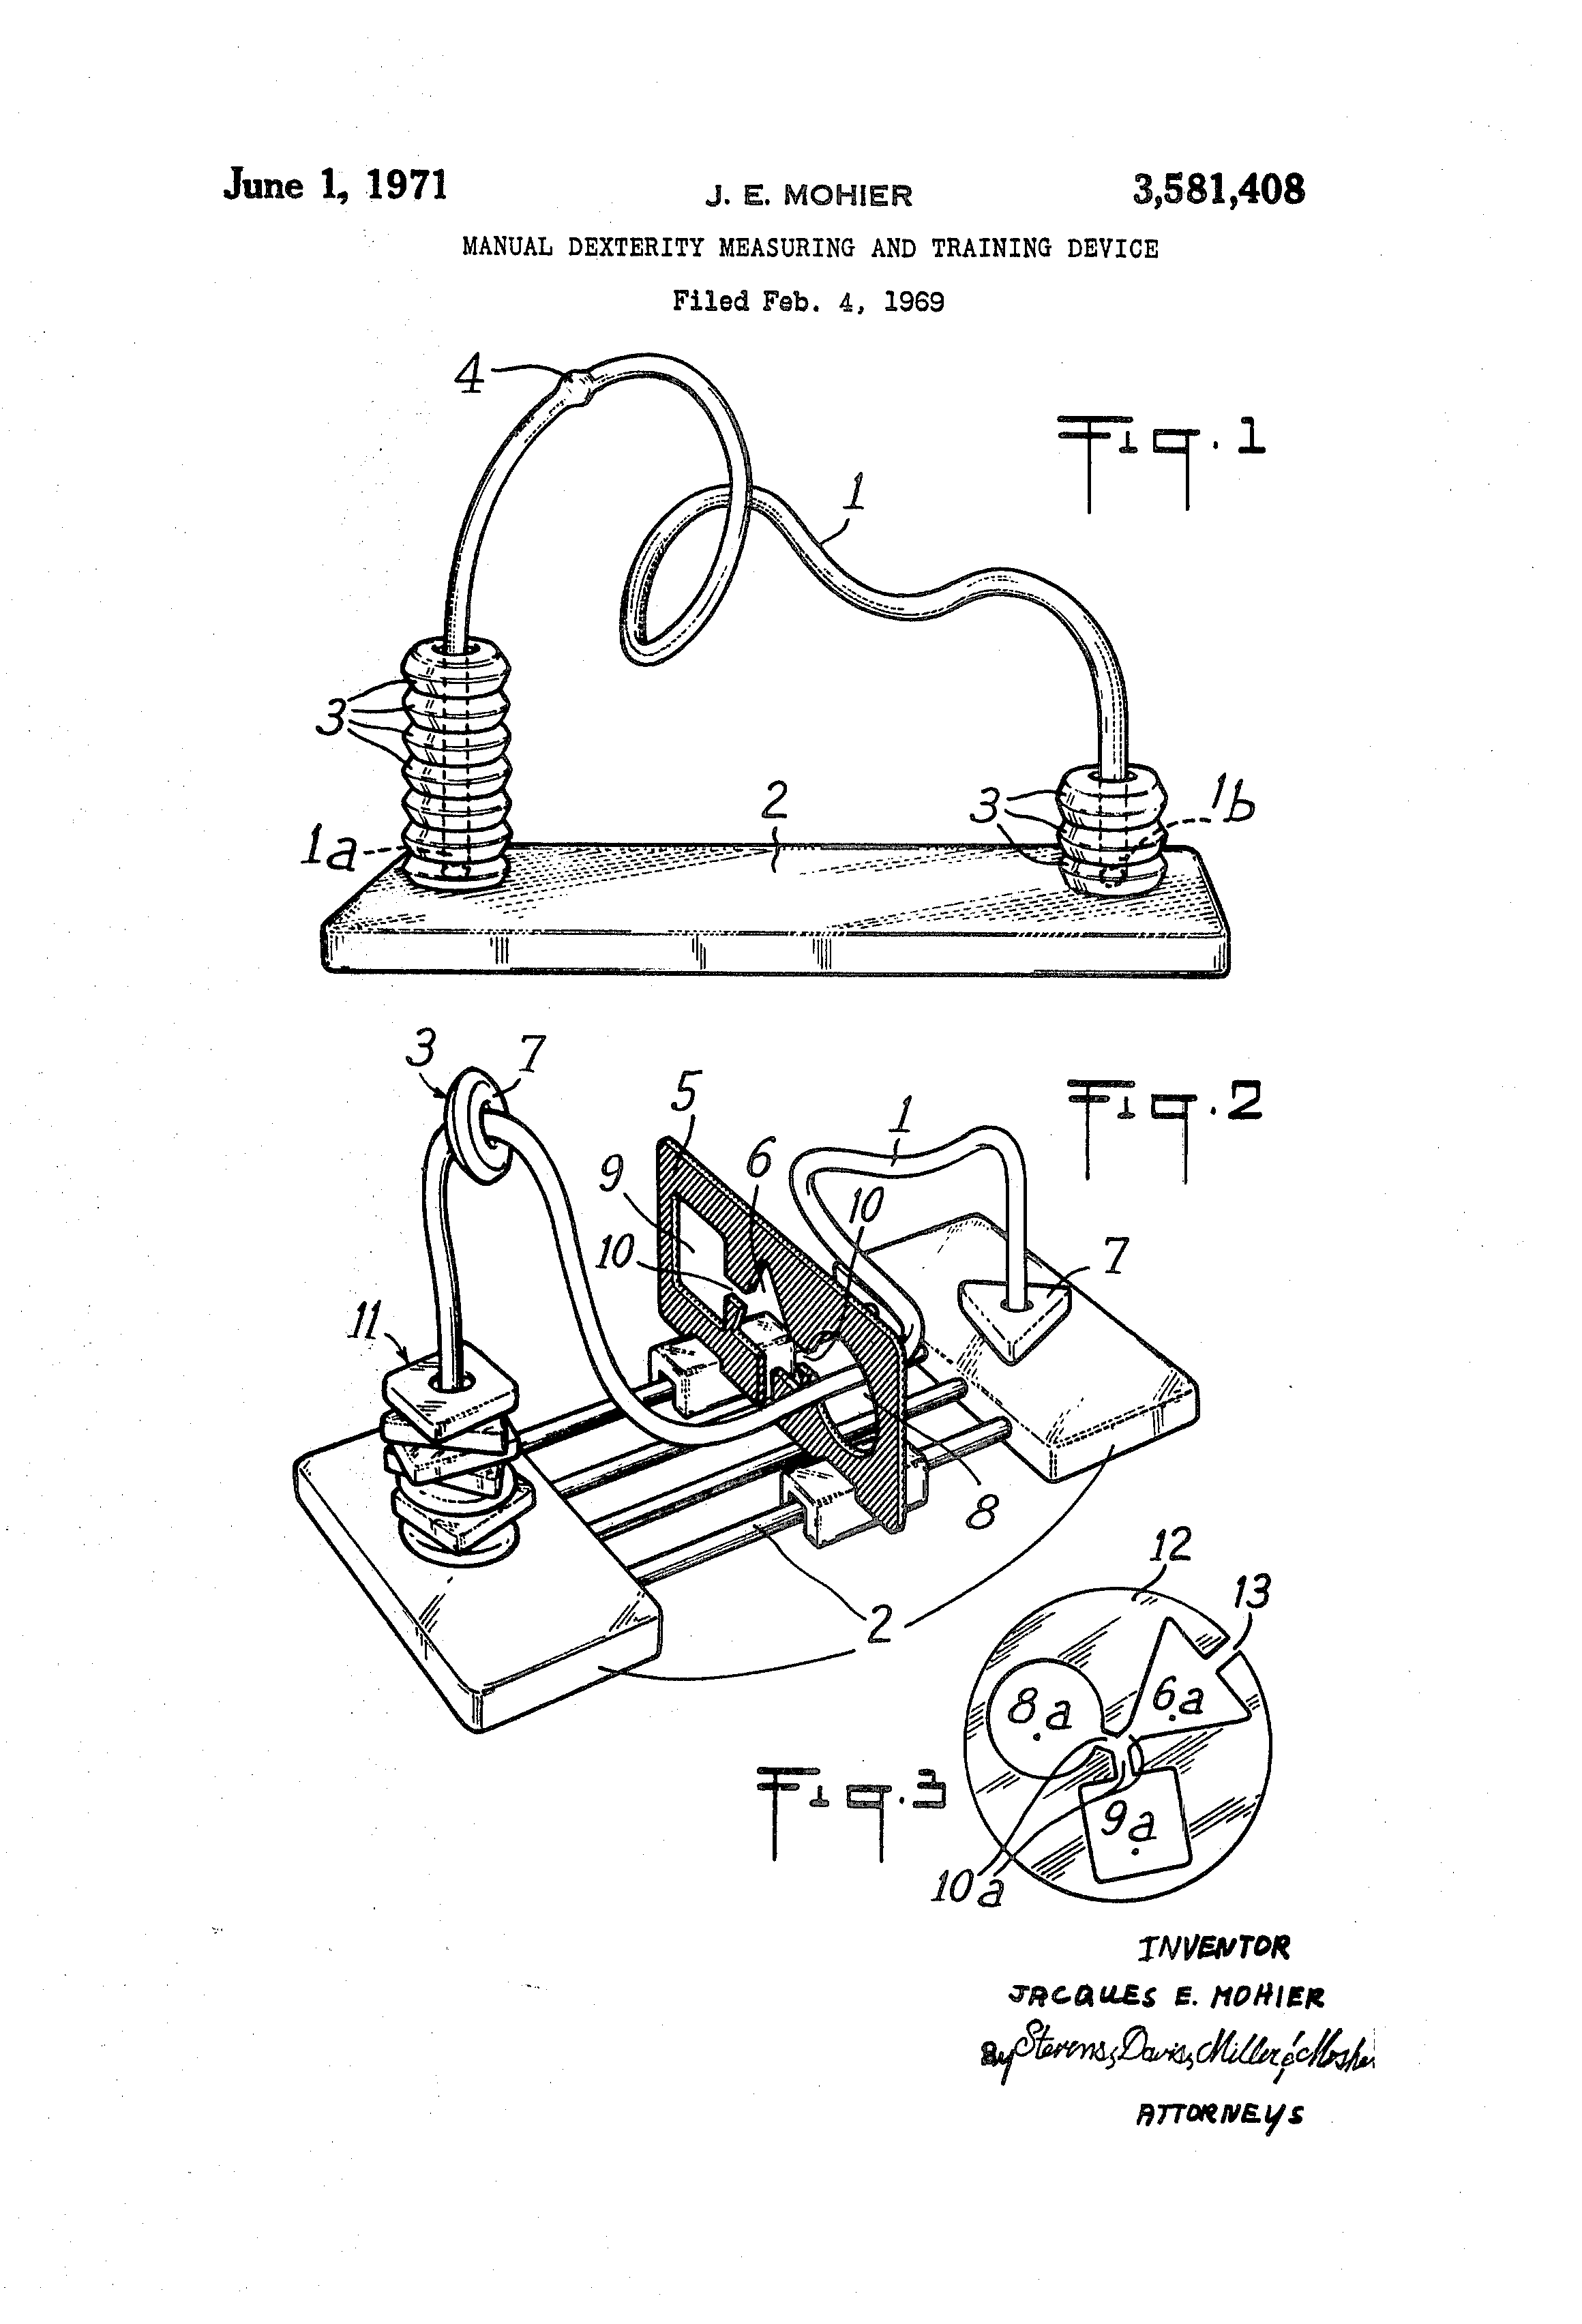 patent us3581408 - manual dexterity measuring and training device